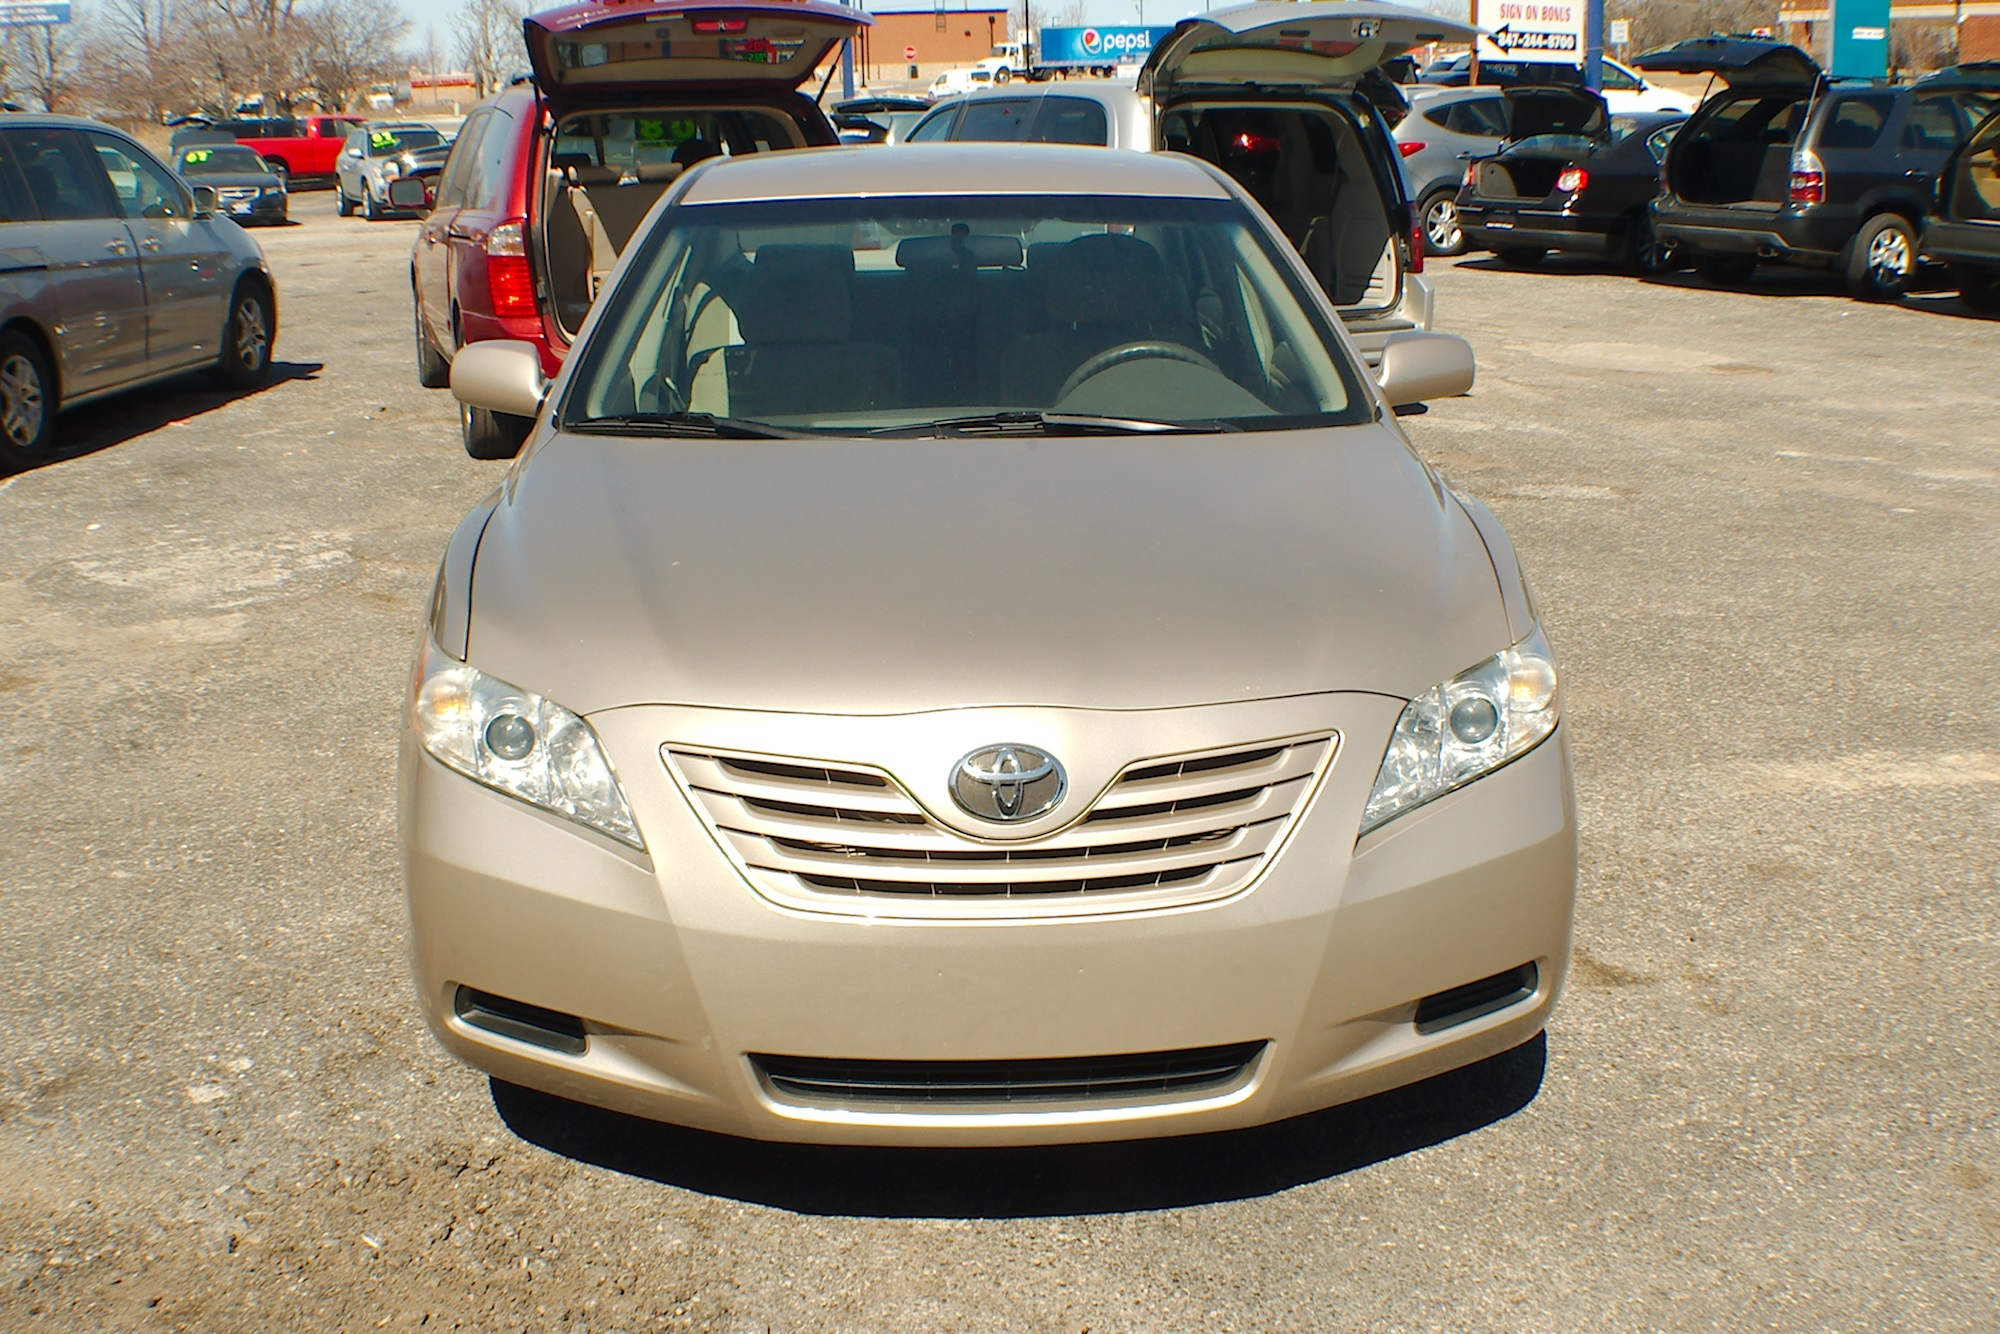 2007 Toyota Camry LE Beige Sedan Used Car Sale Gurnee Kenosha Mchenry Chicago Illinois